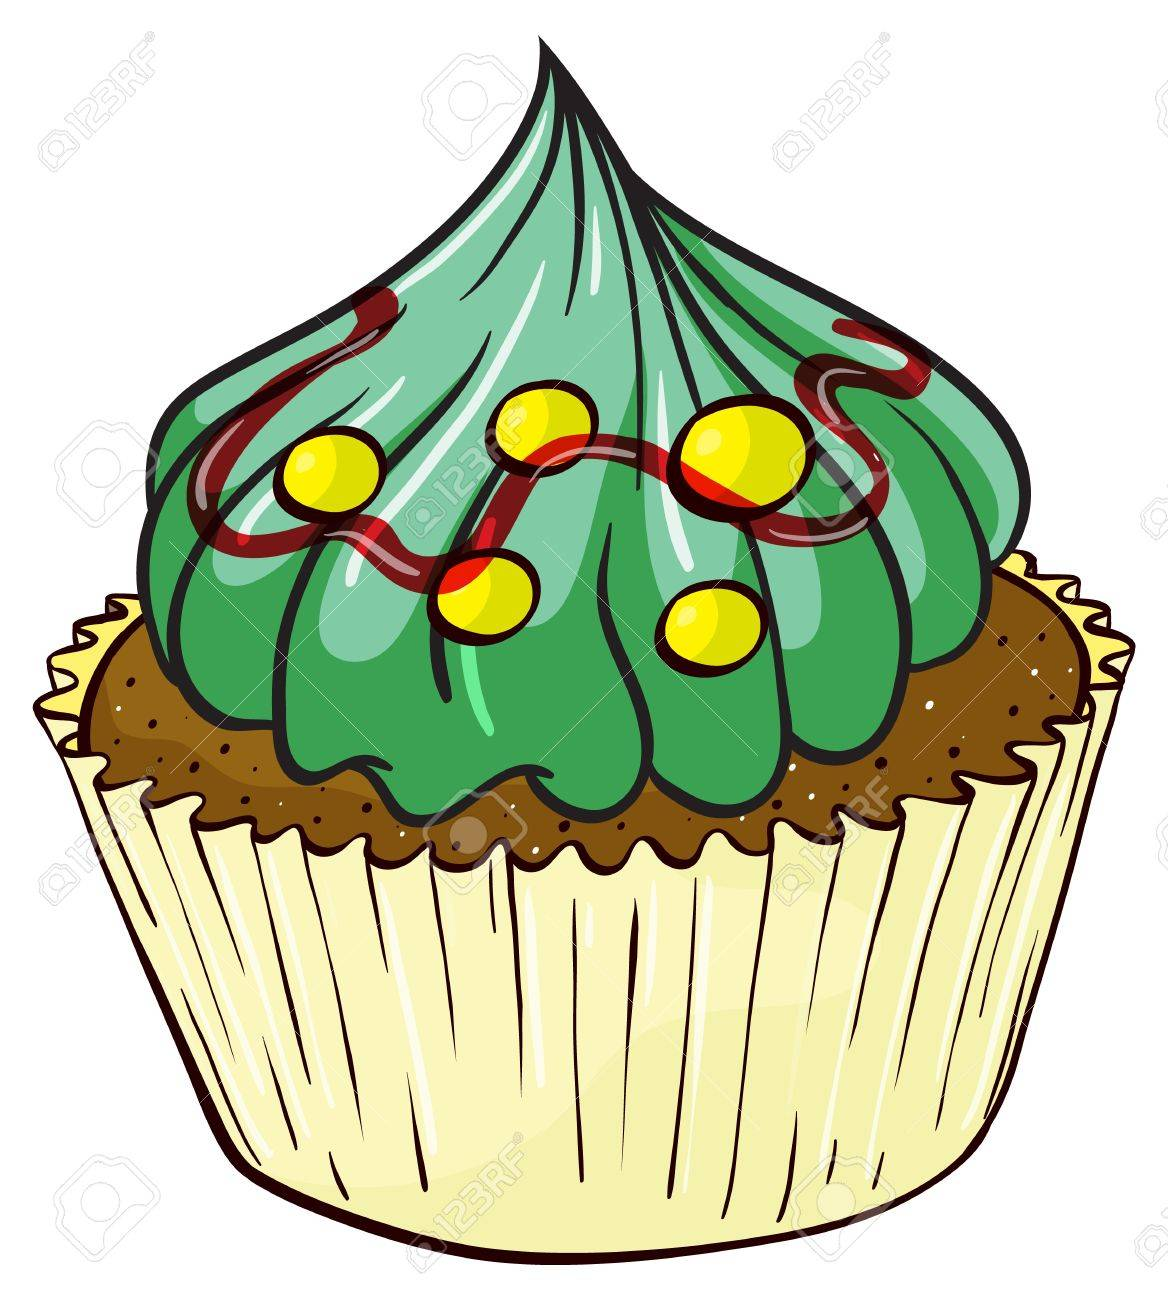 Illustration of an isolated cupcake on white Stock Vector - 16117399